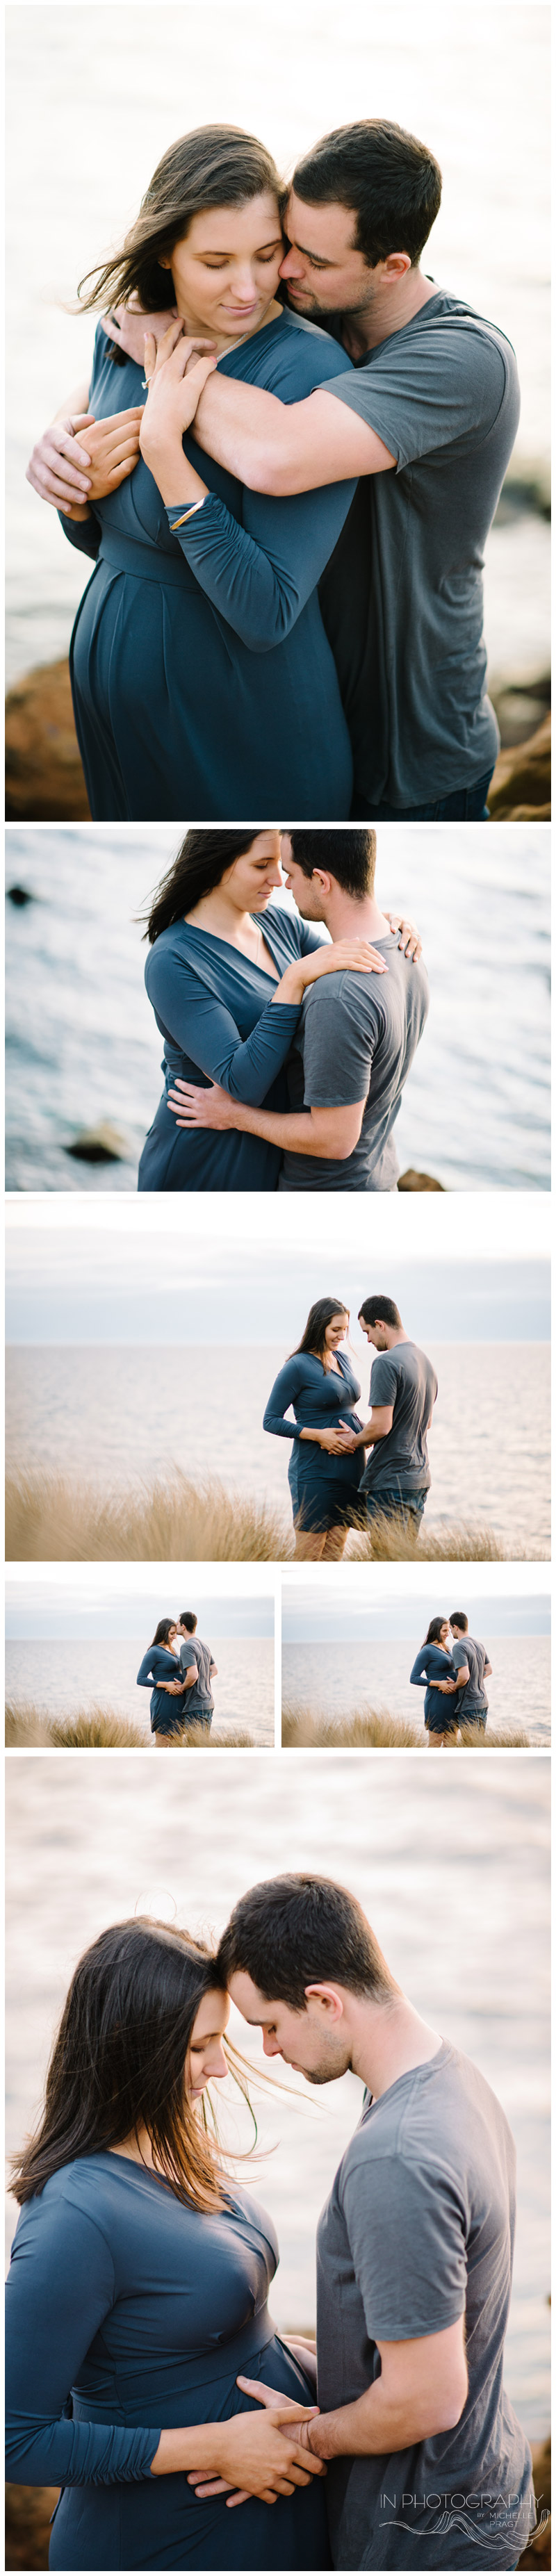 Mornington Peninsula couple family photography